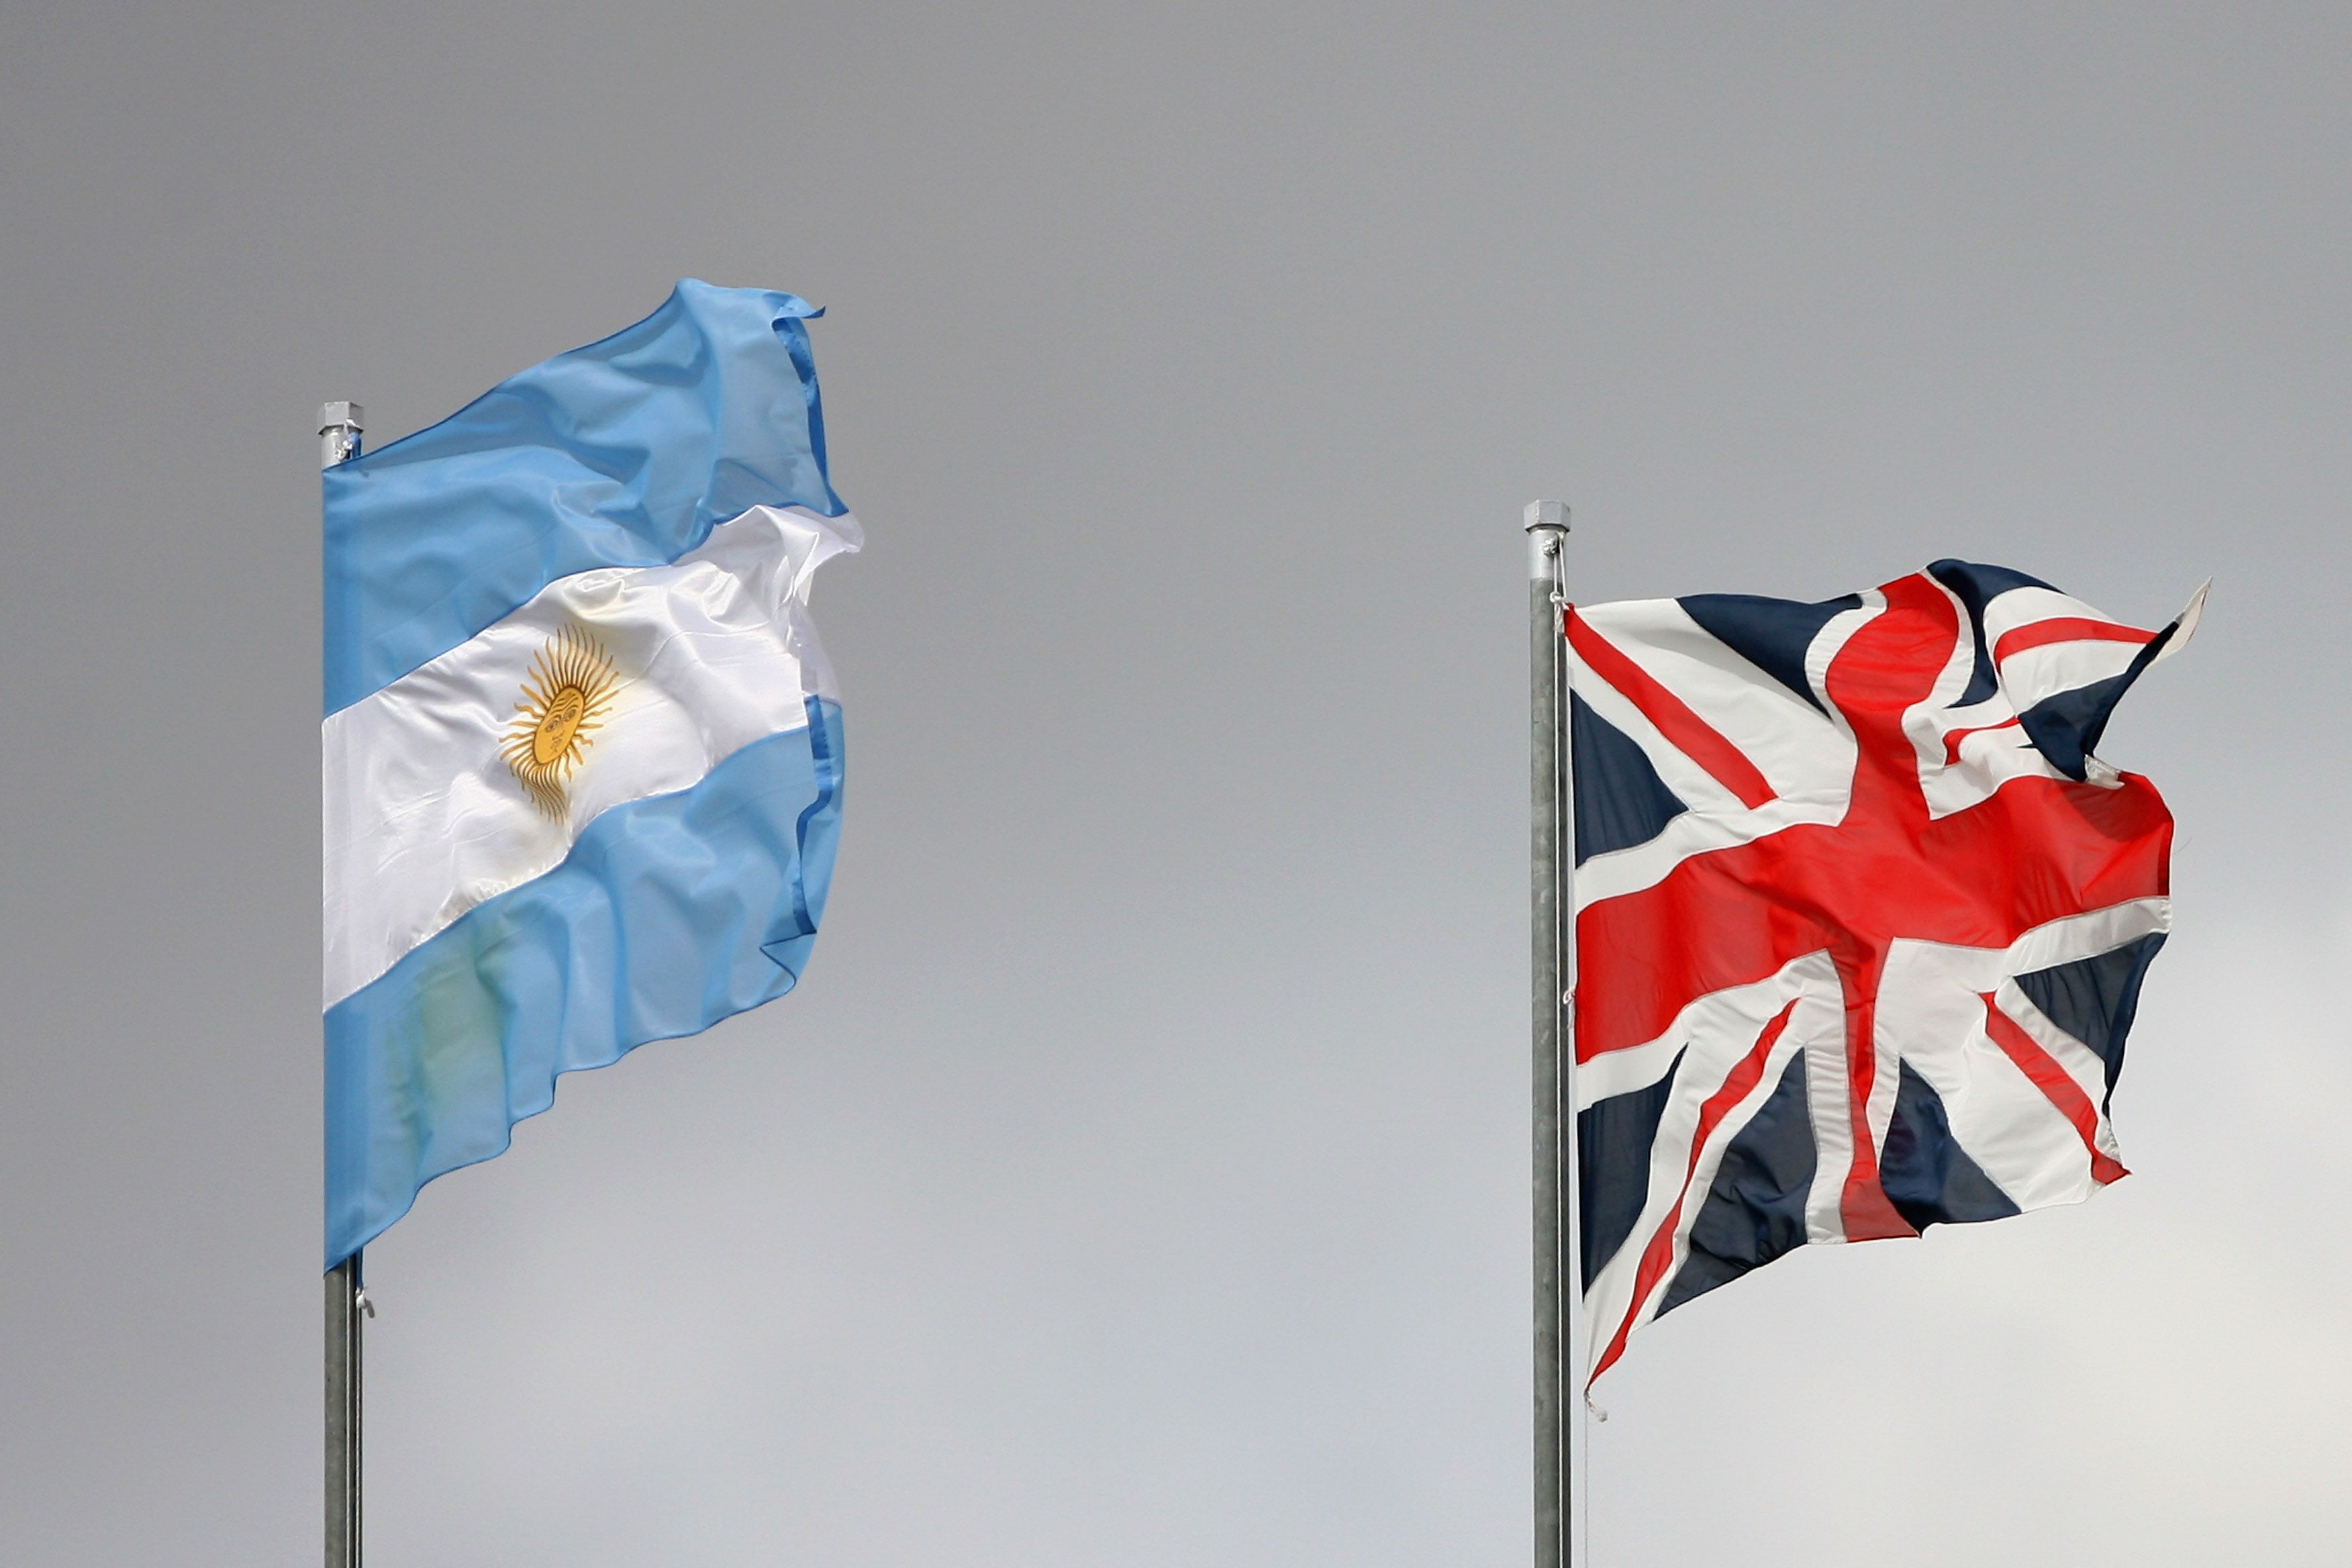 BUENOS AIRES, ARGENTINA - FEBRUARY 10:  The Argentine and British flags are present on the last day of the Davis Cup World Group match between Argentina and Great Britain at the Parque Roca Stadium on February 10, 2008 in Buenos Aires, Argentina.  (Photo by Julian Finney/Getty Images)